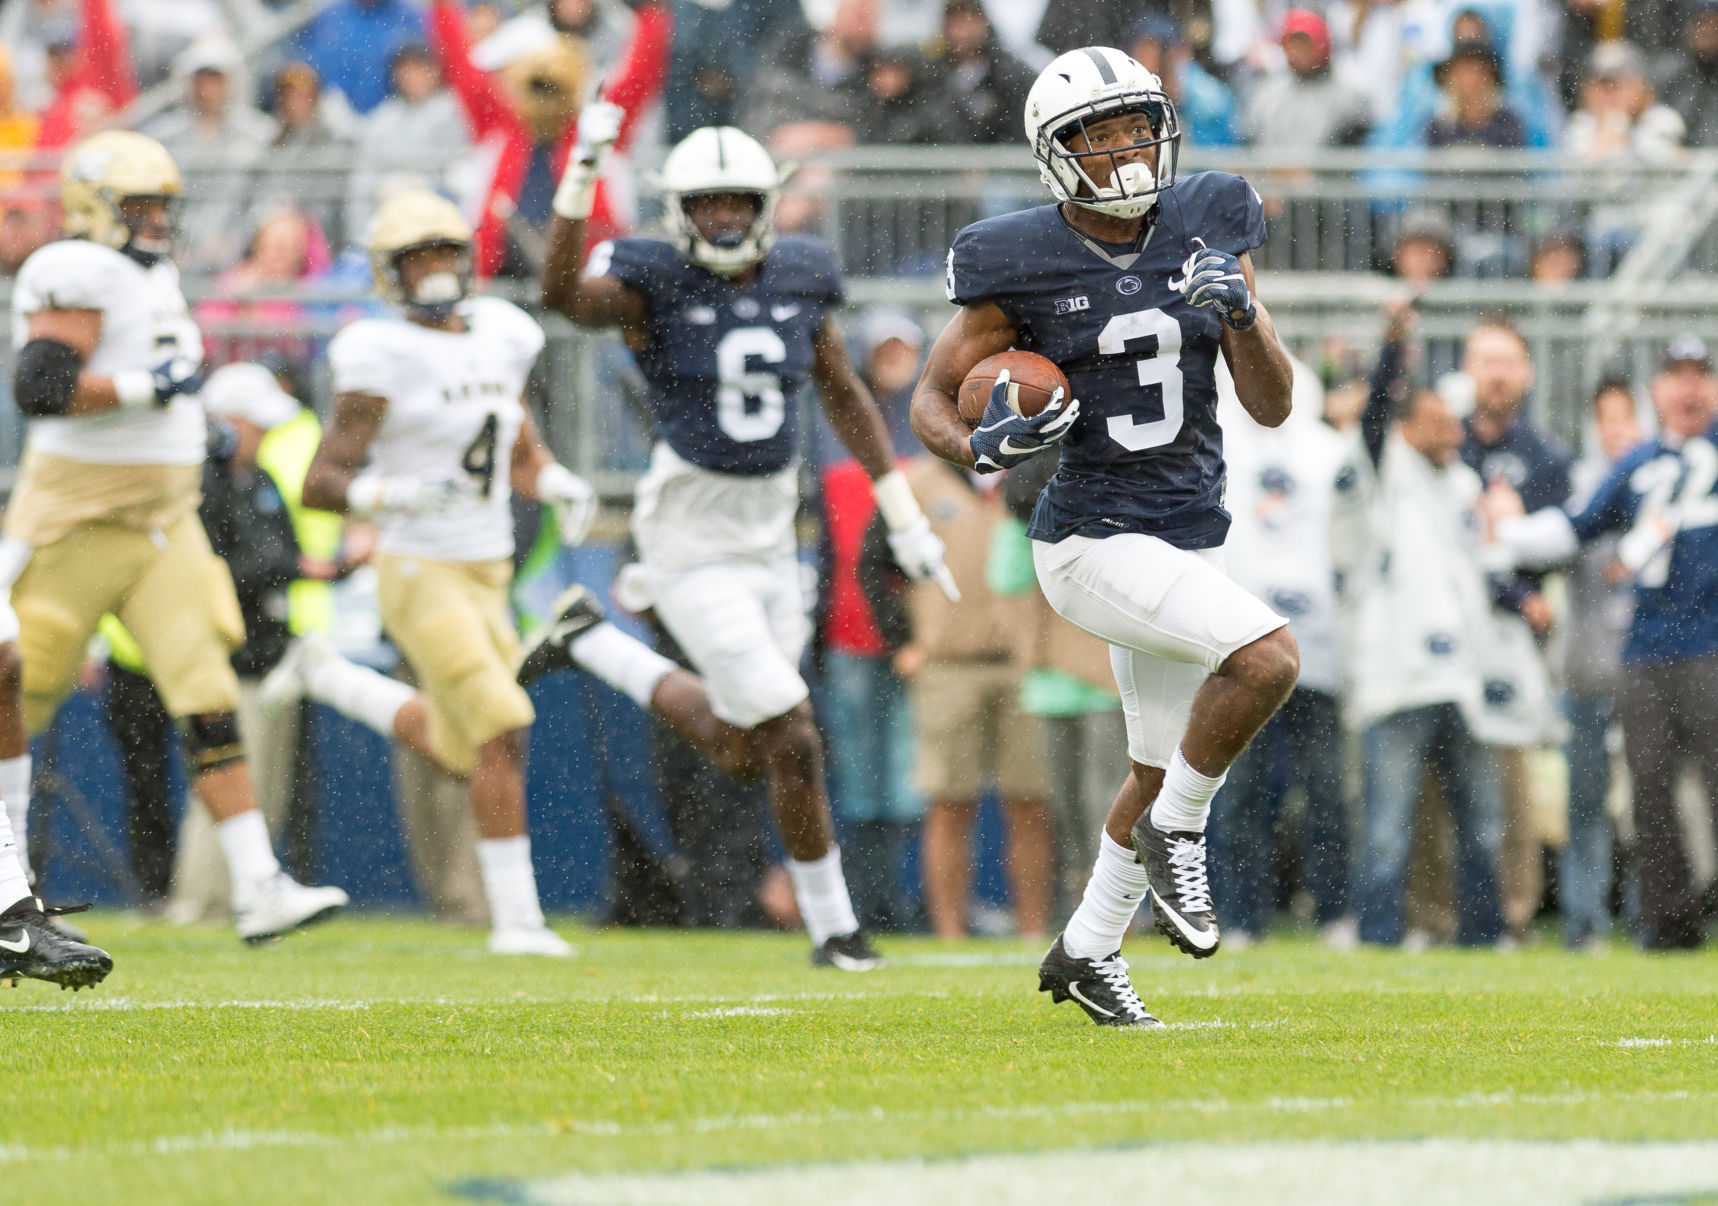 Penn State's First TD in 2017 is a Punt Return